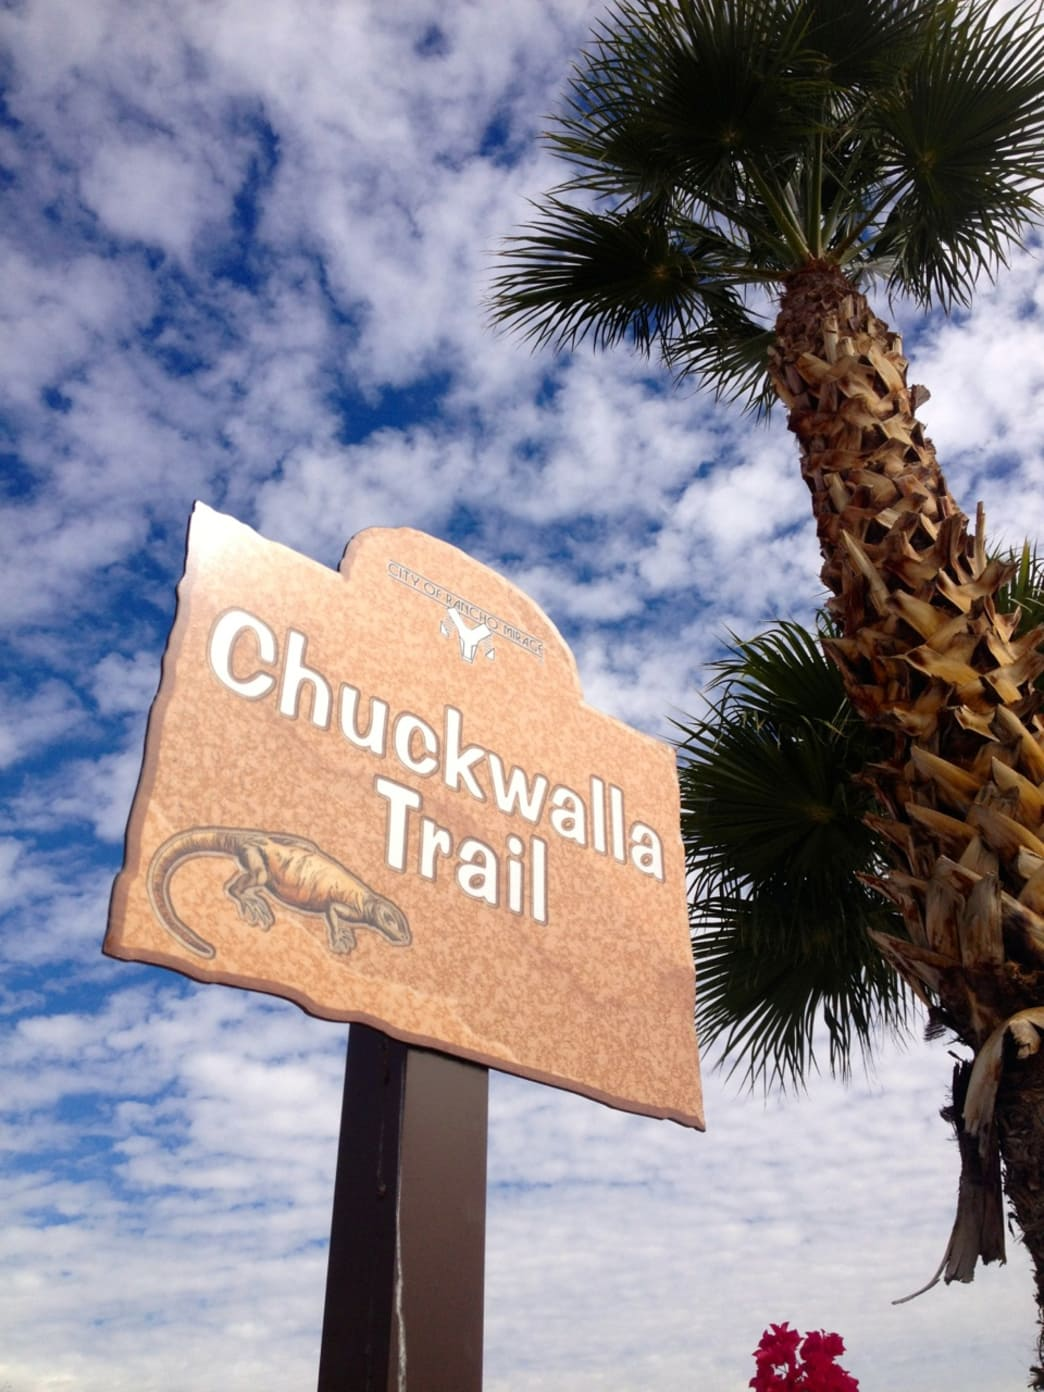 The Chuckwalla Trail is a good option for a trail run.